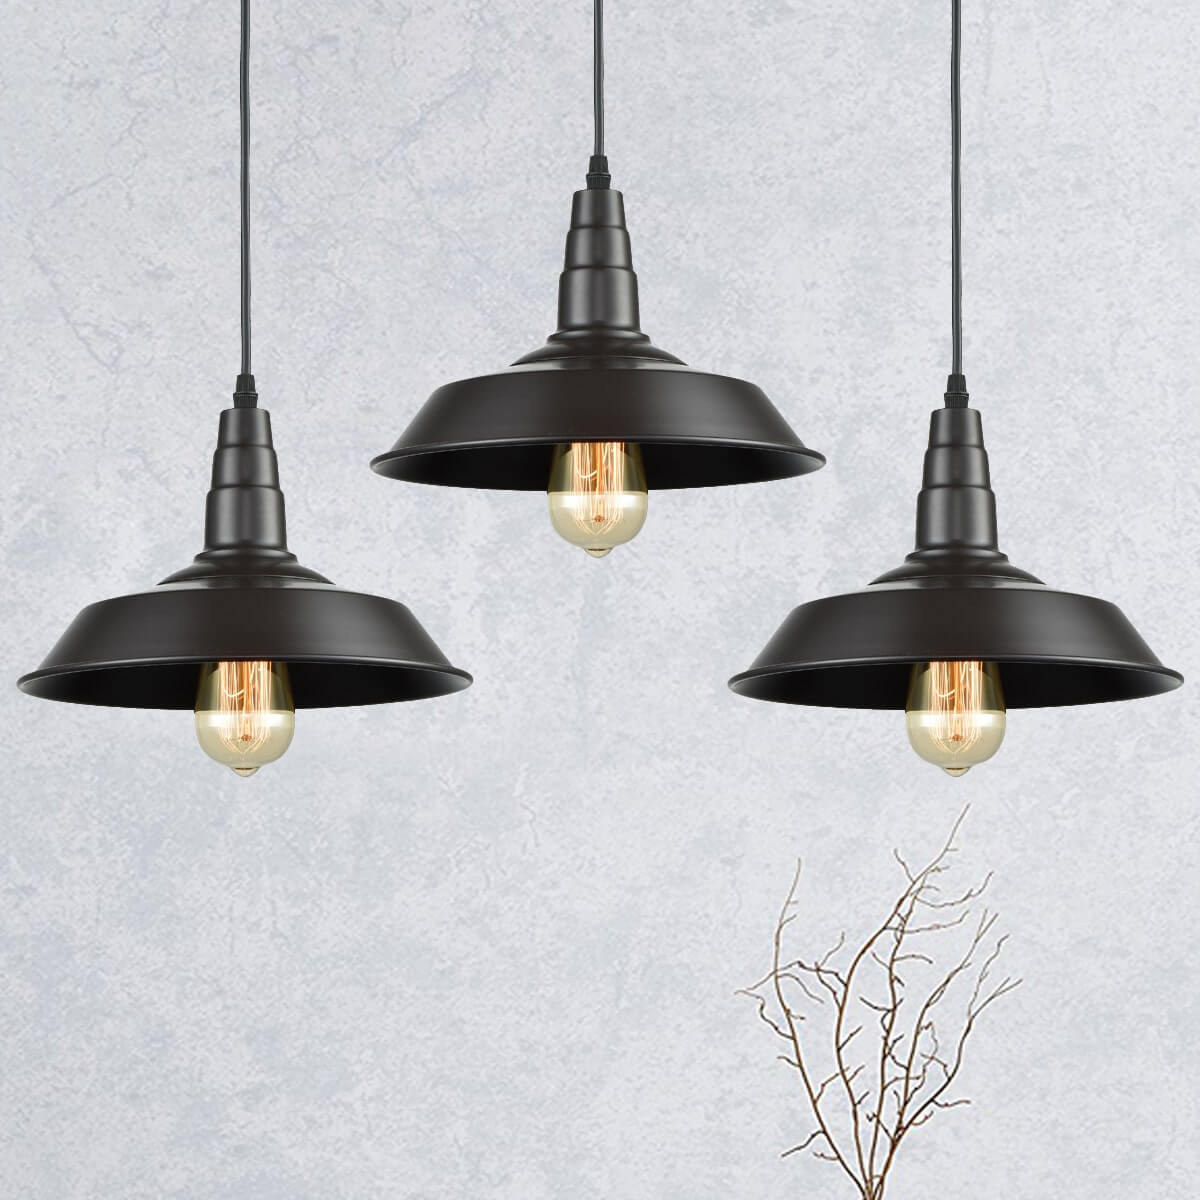 Kitchen Island Pendant Lighting Oil Rubbed Bronze Finish 3 Pack